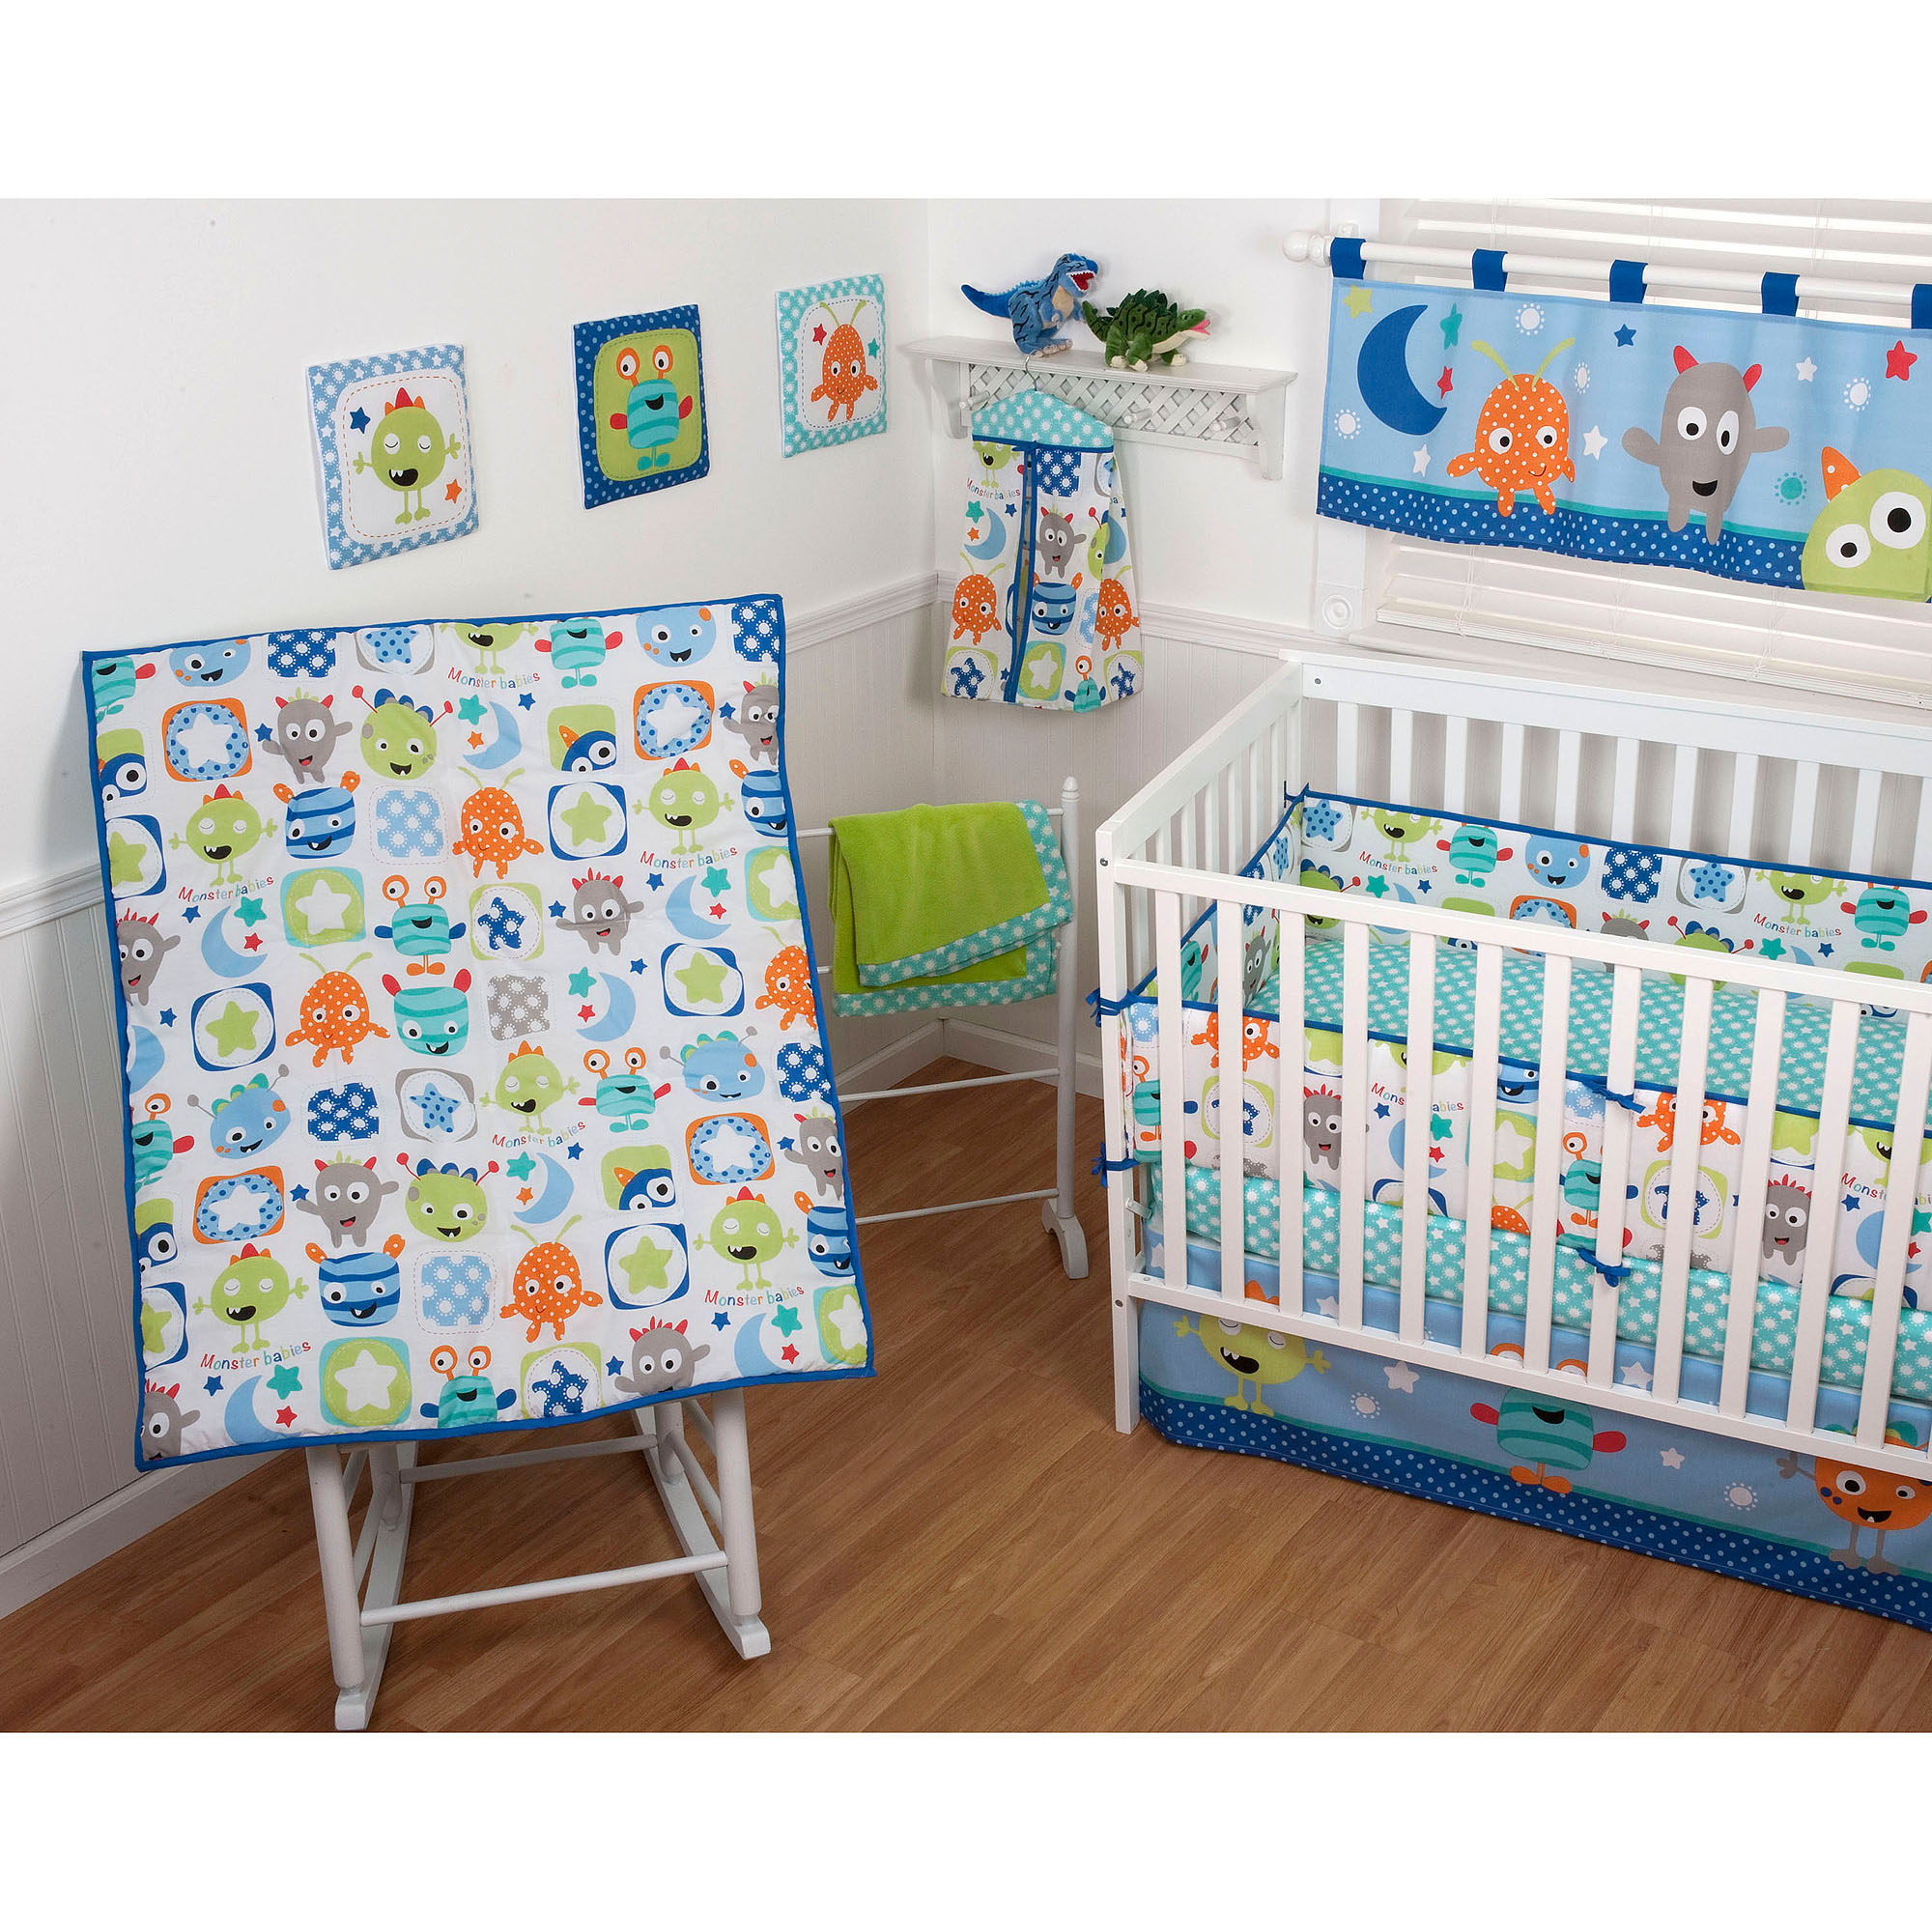 Baby cribs bedding for boys - Baby Cribs Bedding For Boys 49